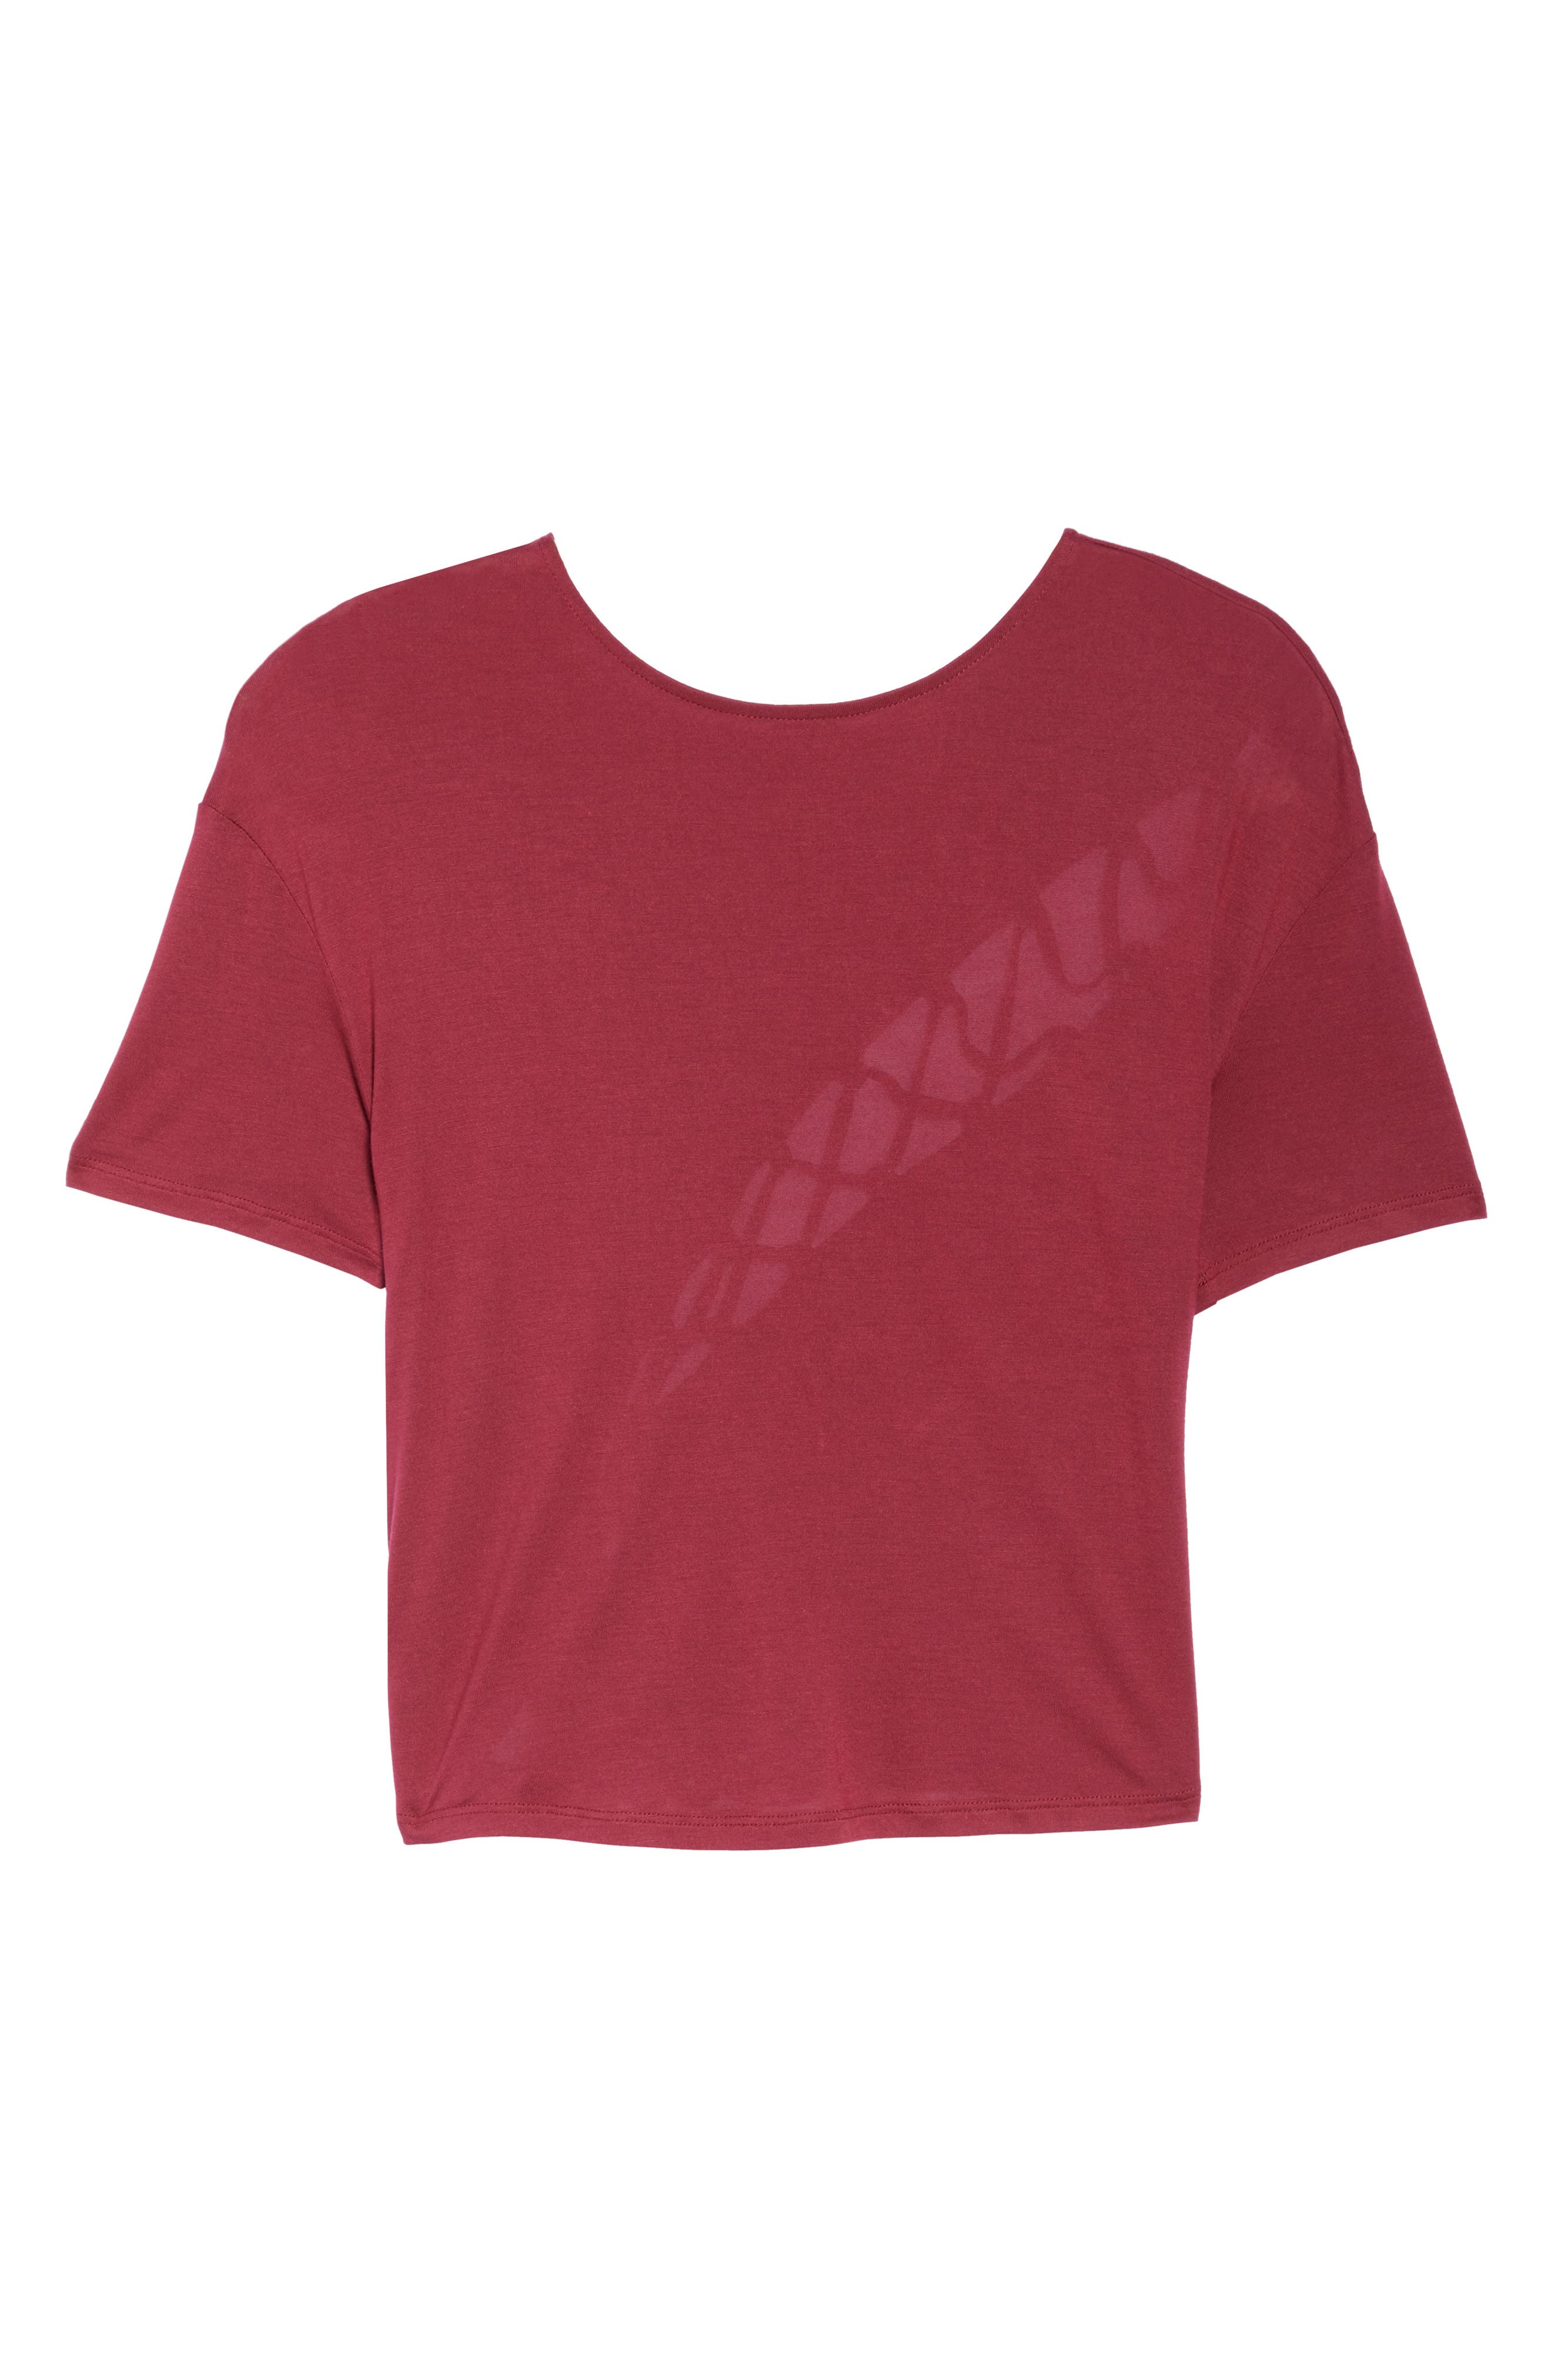 Entwine Crop Tee,                             Alternate thumbnail 7, color,                             Red Velvet